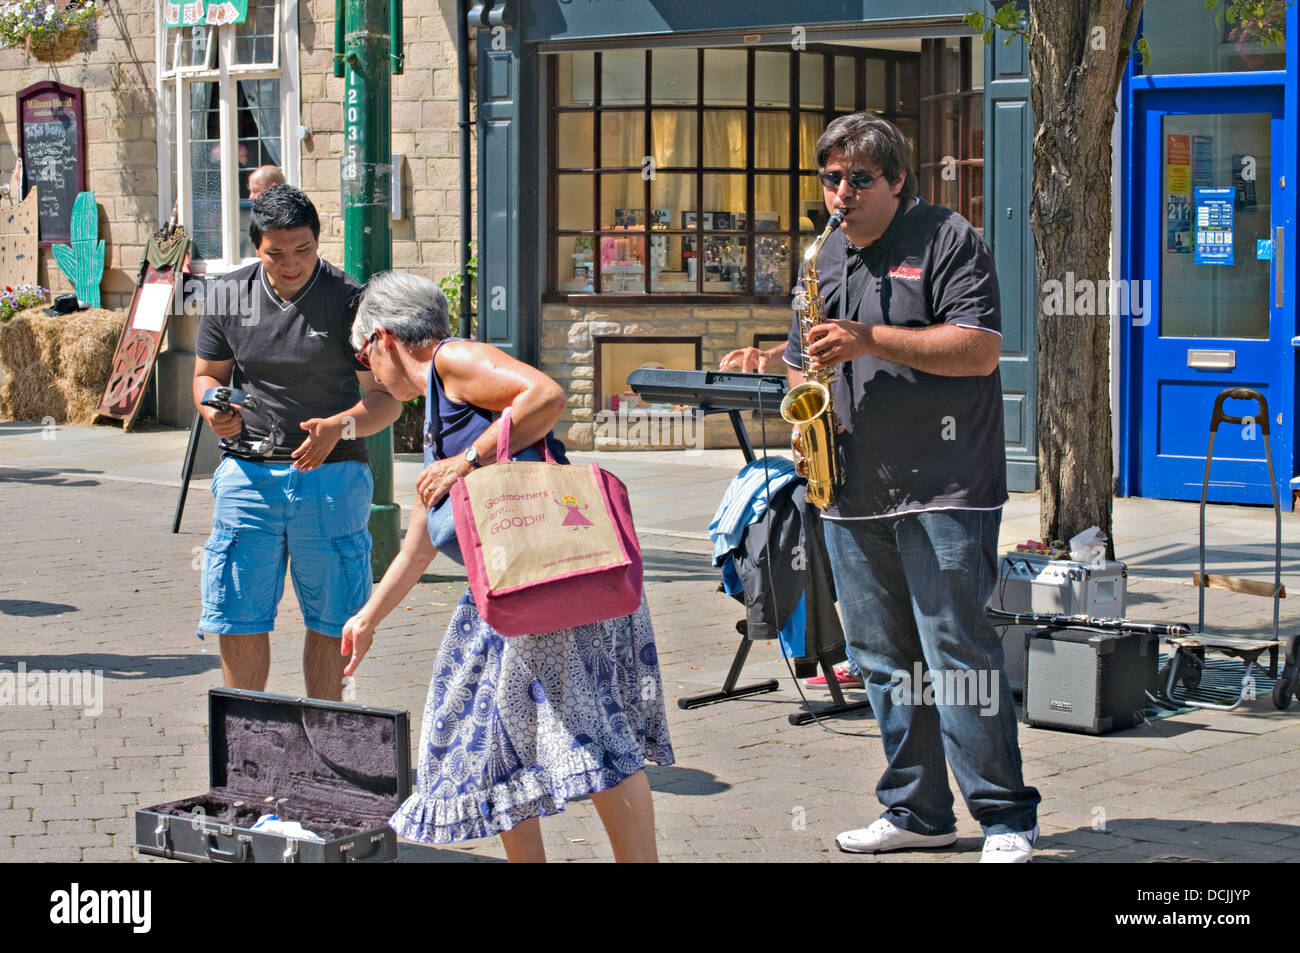 Landscape of some street entertainers in Buxton town centre, in the sunshine, during the summer, UK. - Stock Image